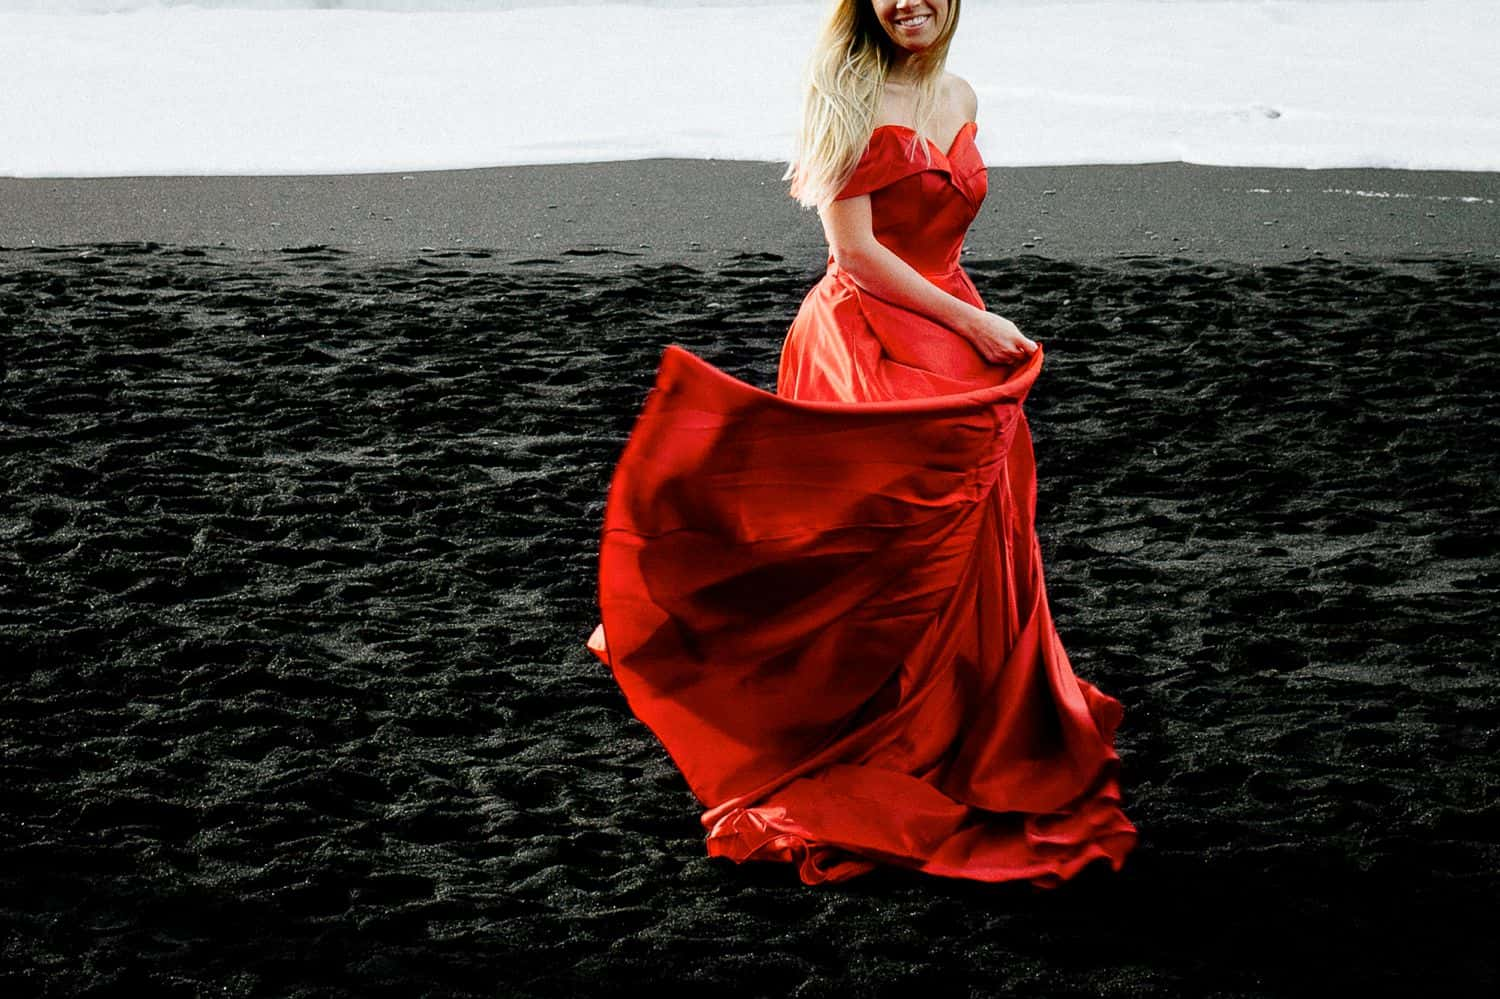 Woman in a flowing red dress dances on a black sand beach in Iceland. The photo is cropped so her eyes are not in the picture.